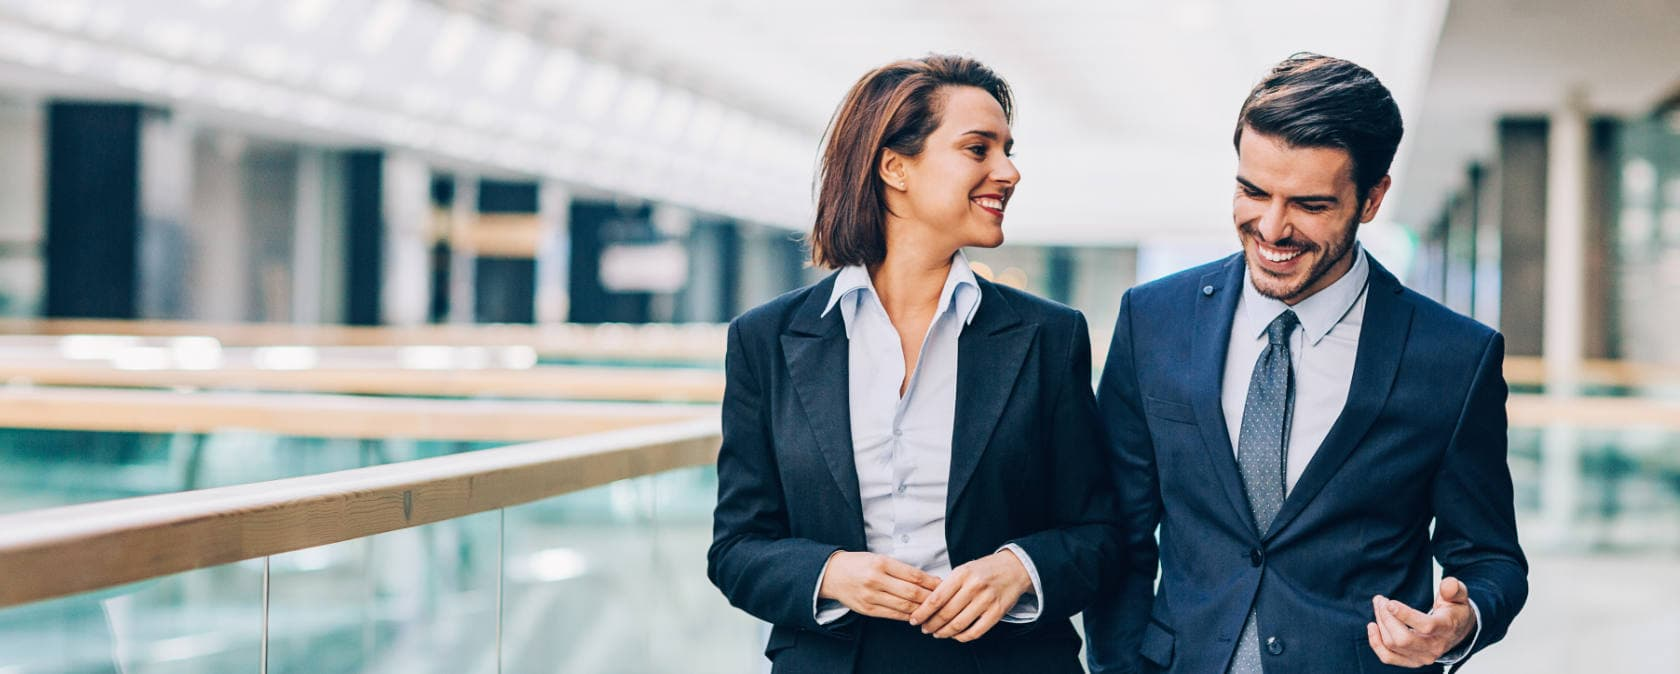 Two professionals in businesswear smile as they walk along an airy office mezzanine